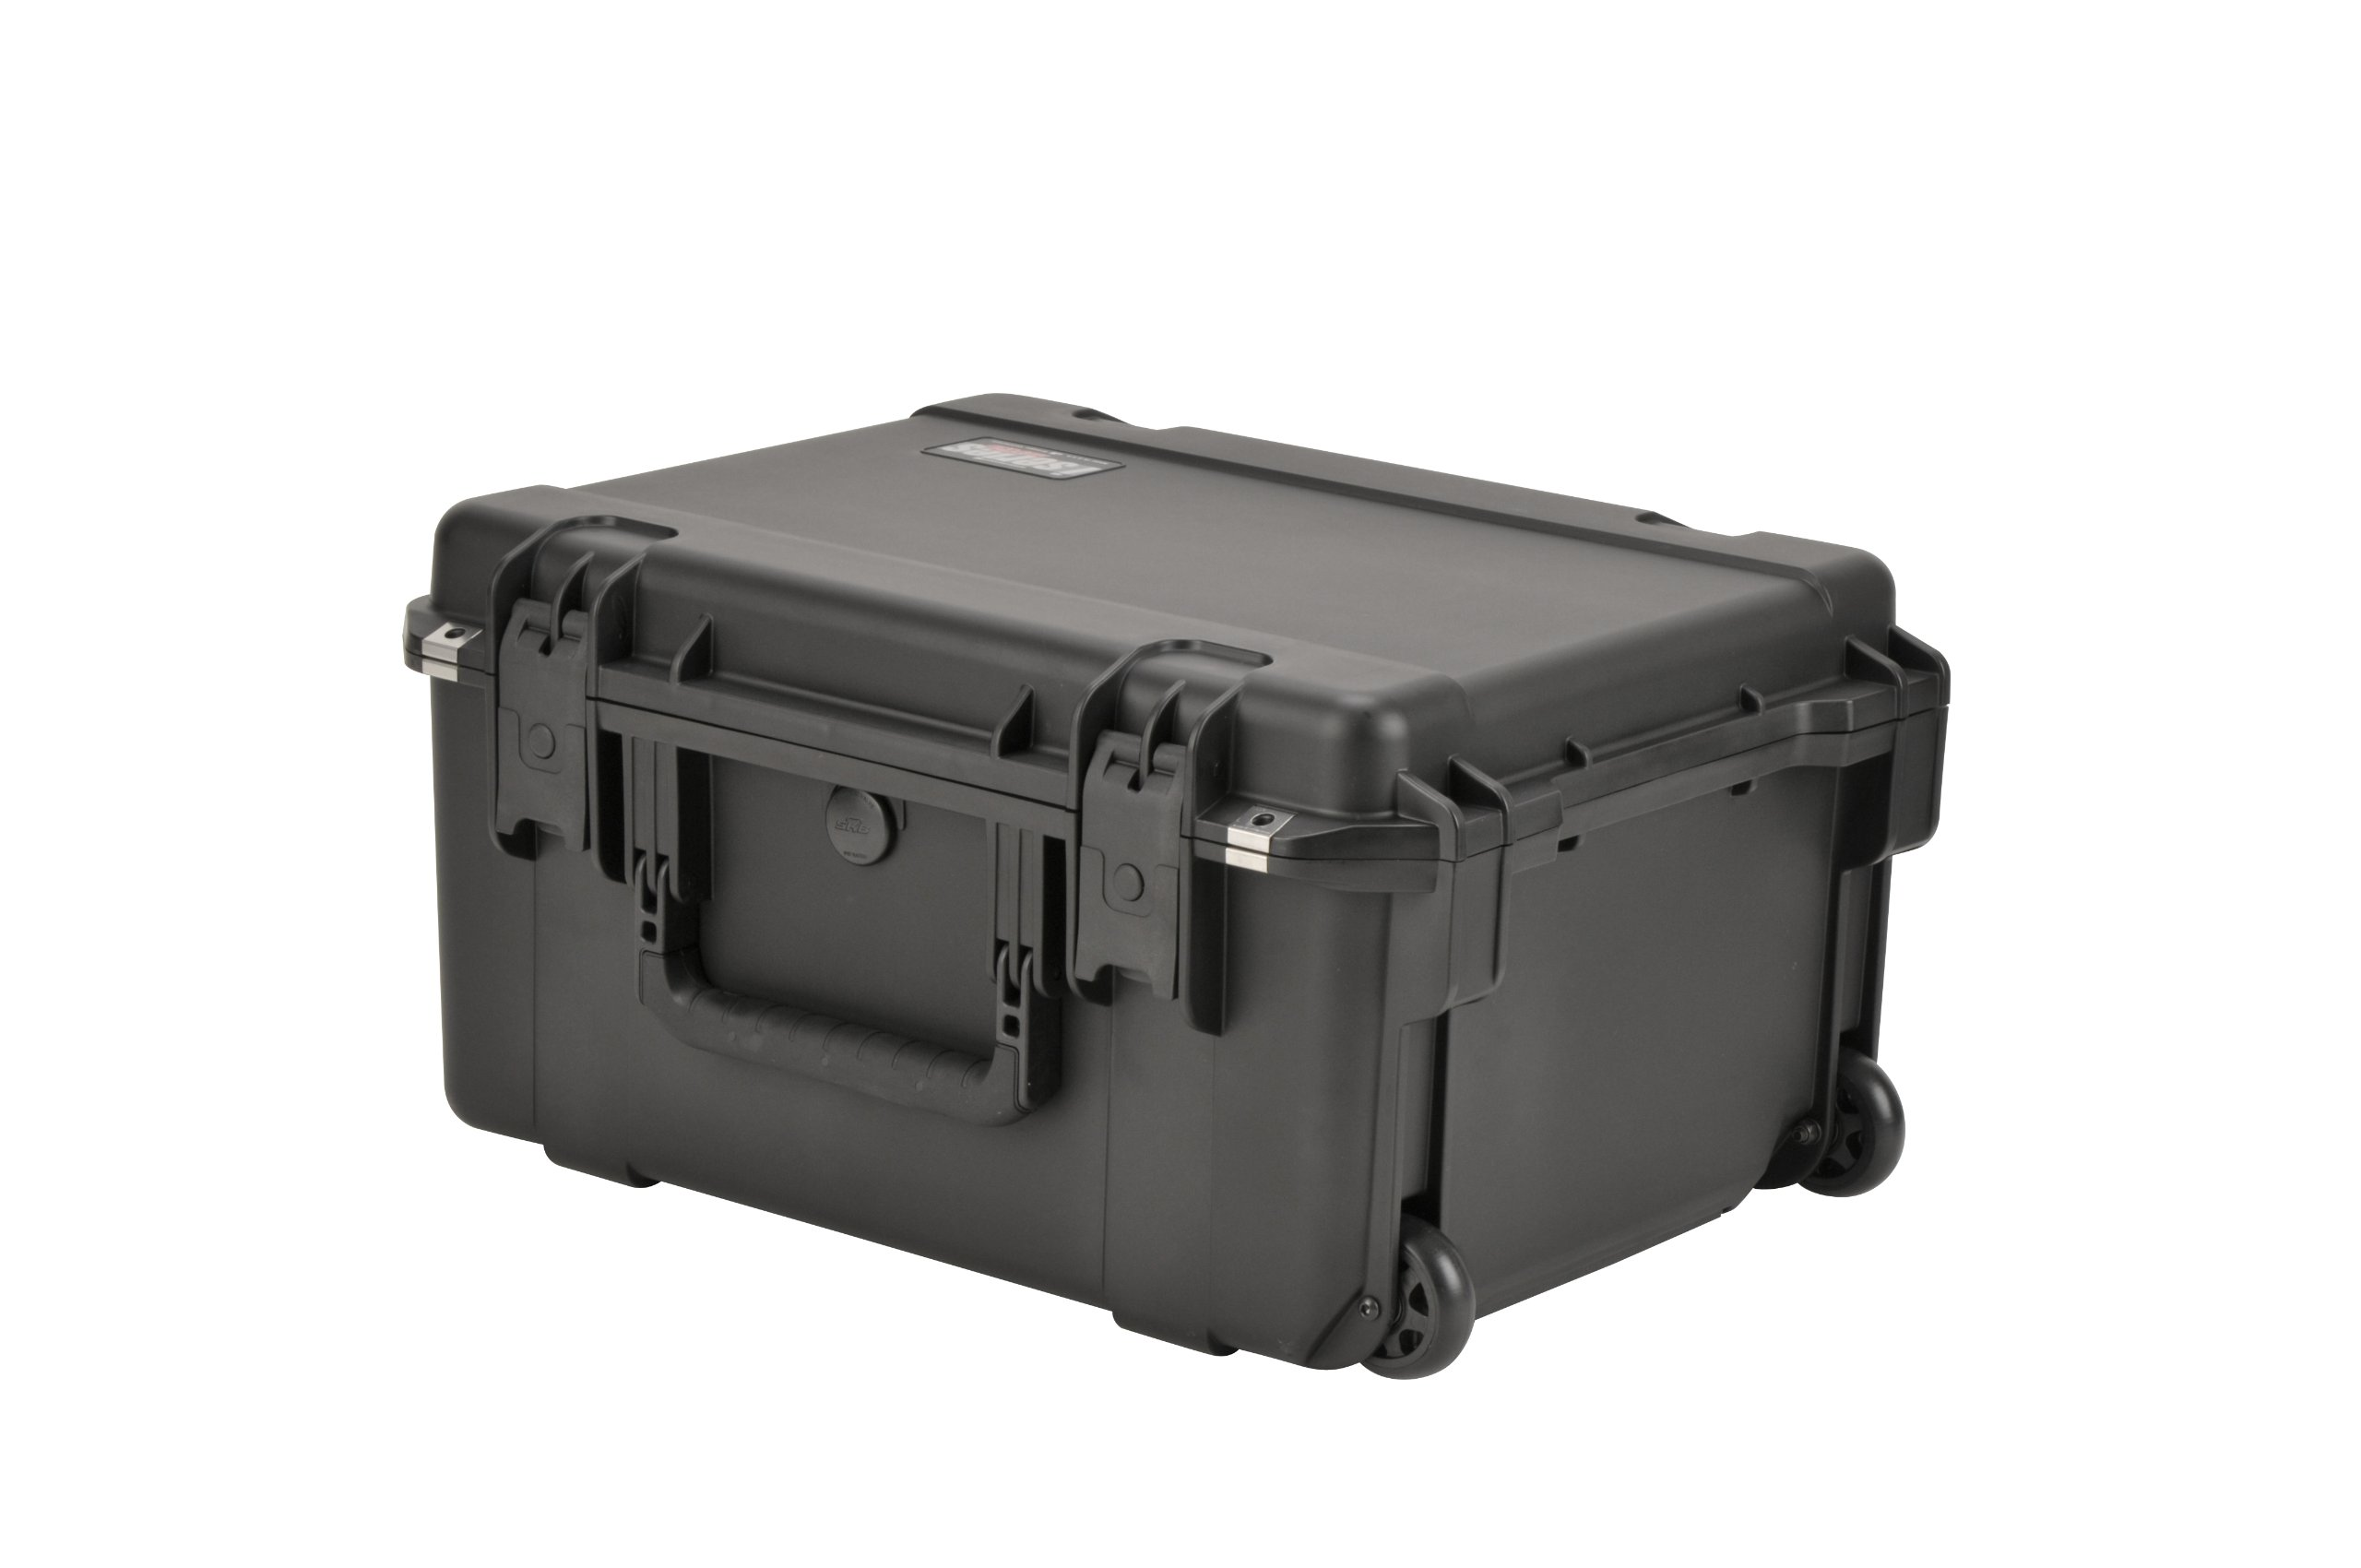 SKB Equipment Case, 20 1/2 x 15 1/2 x 10 with Wheels and Dividers